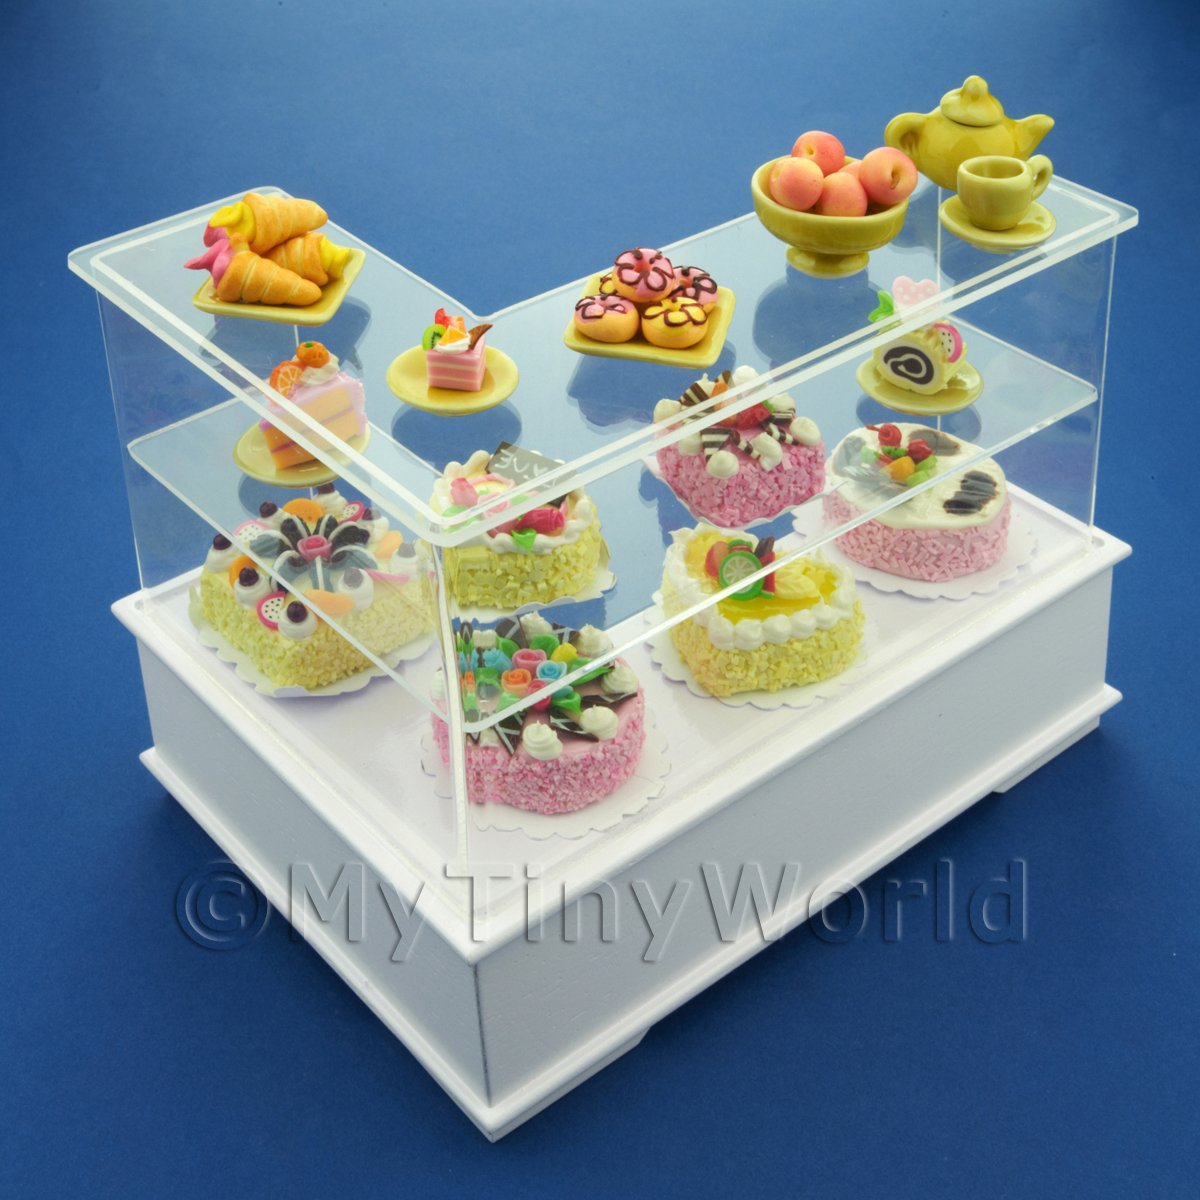 Dolls House Miniature Right Hand Yellow Themed Cake Counter